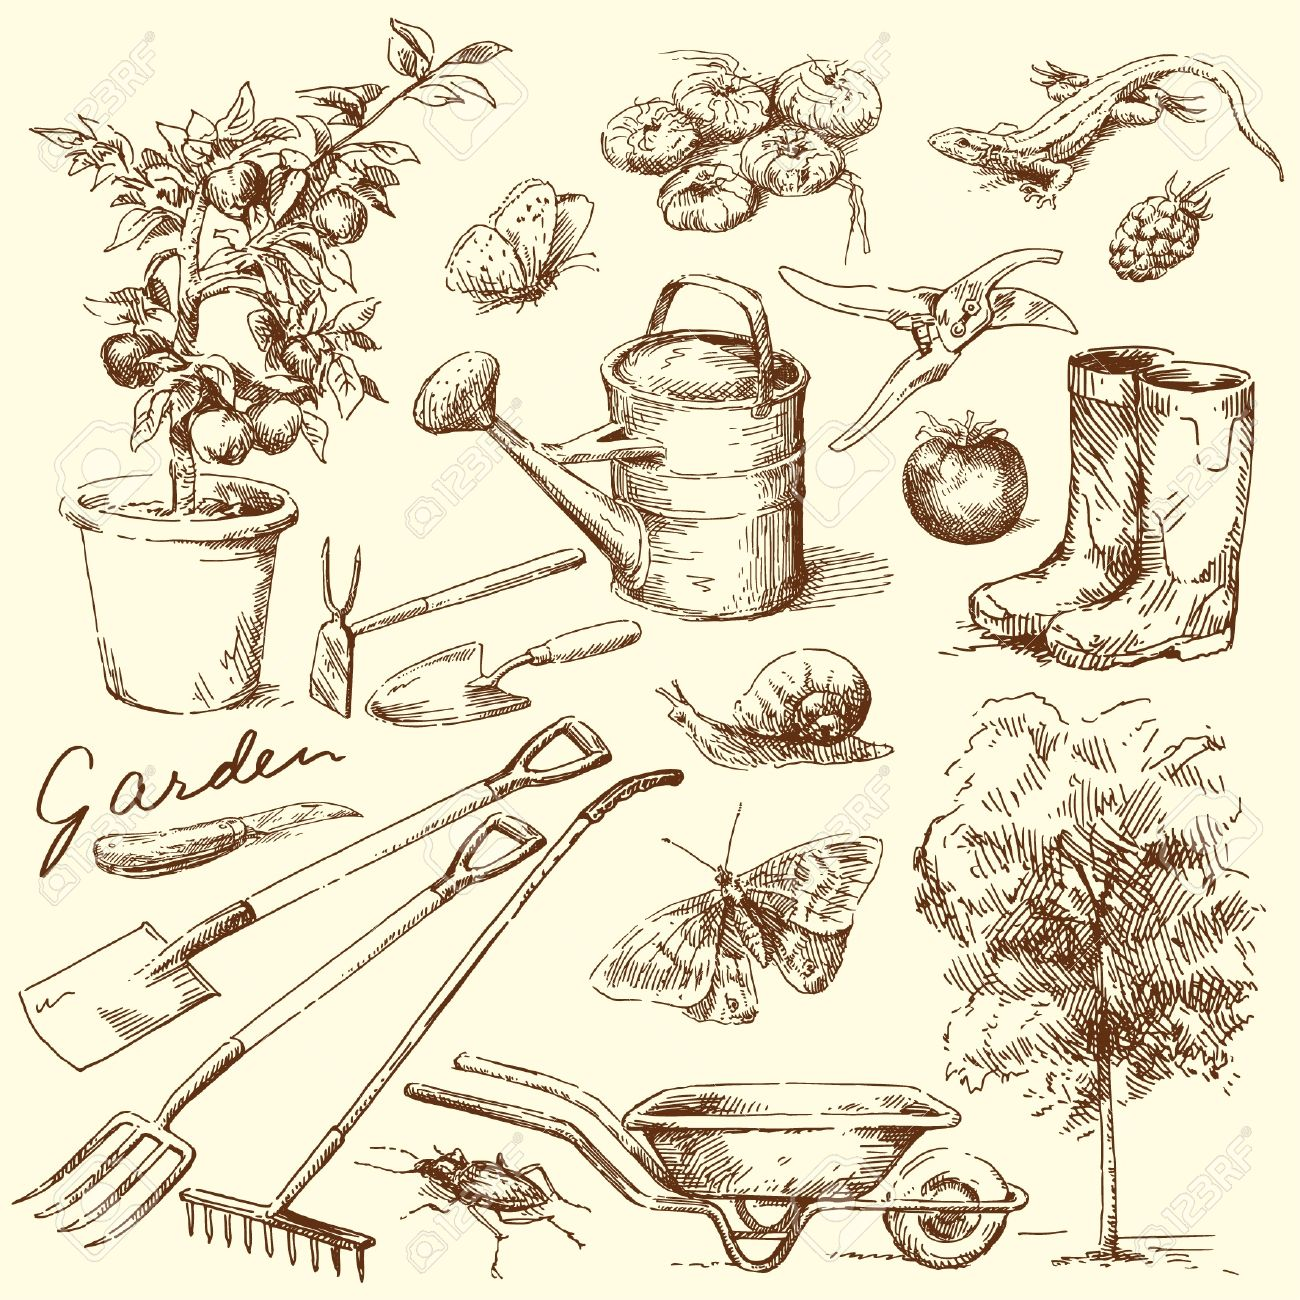 Vegetable garden kids drawing - Vegetable Garden Gardening Tools Illustration